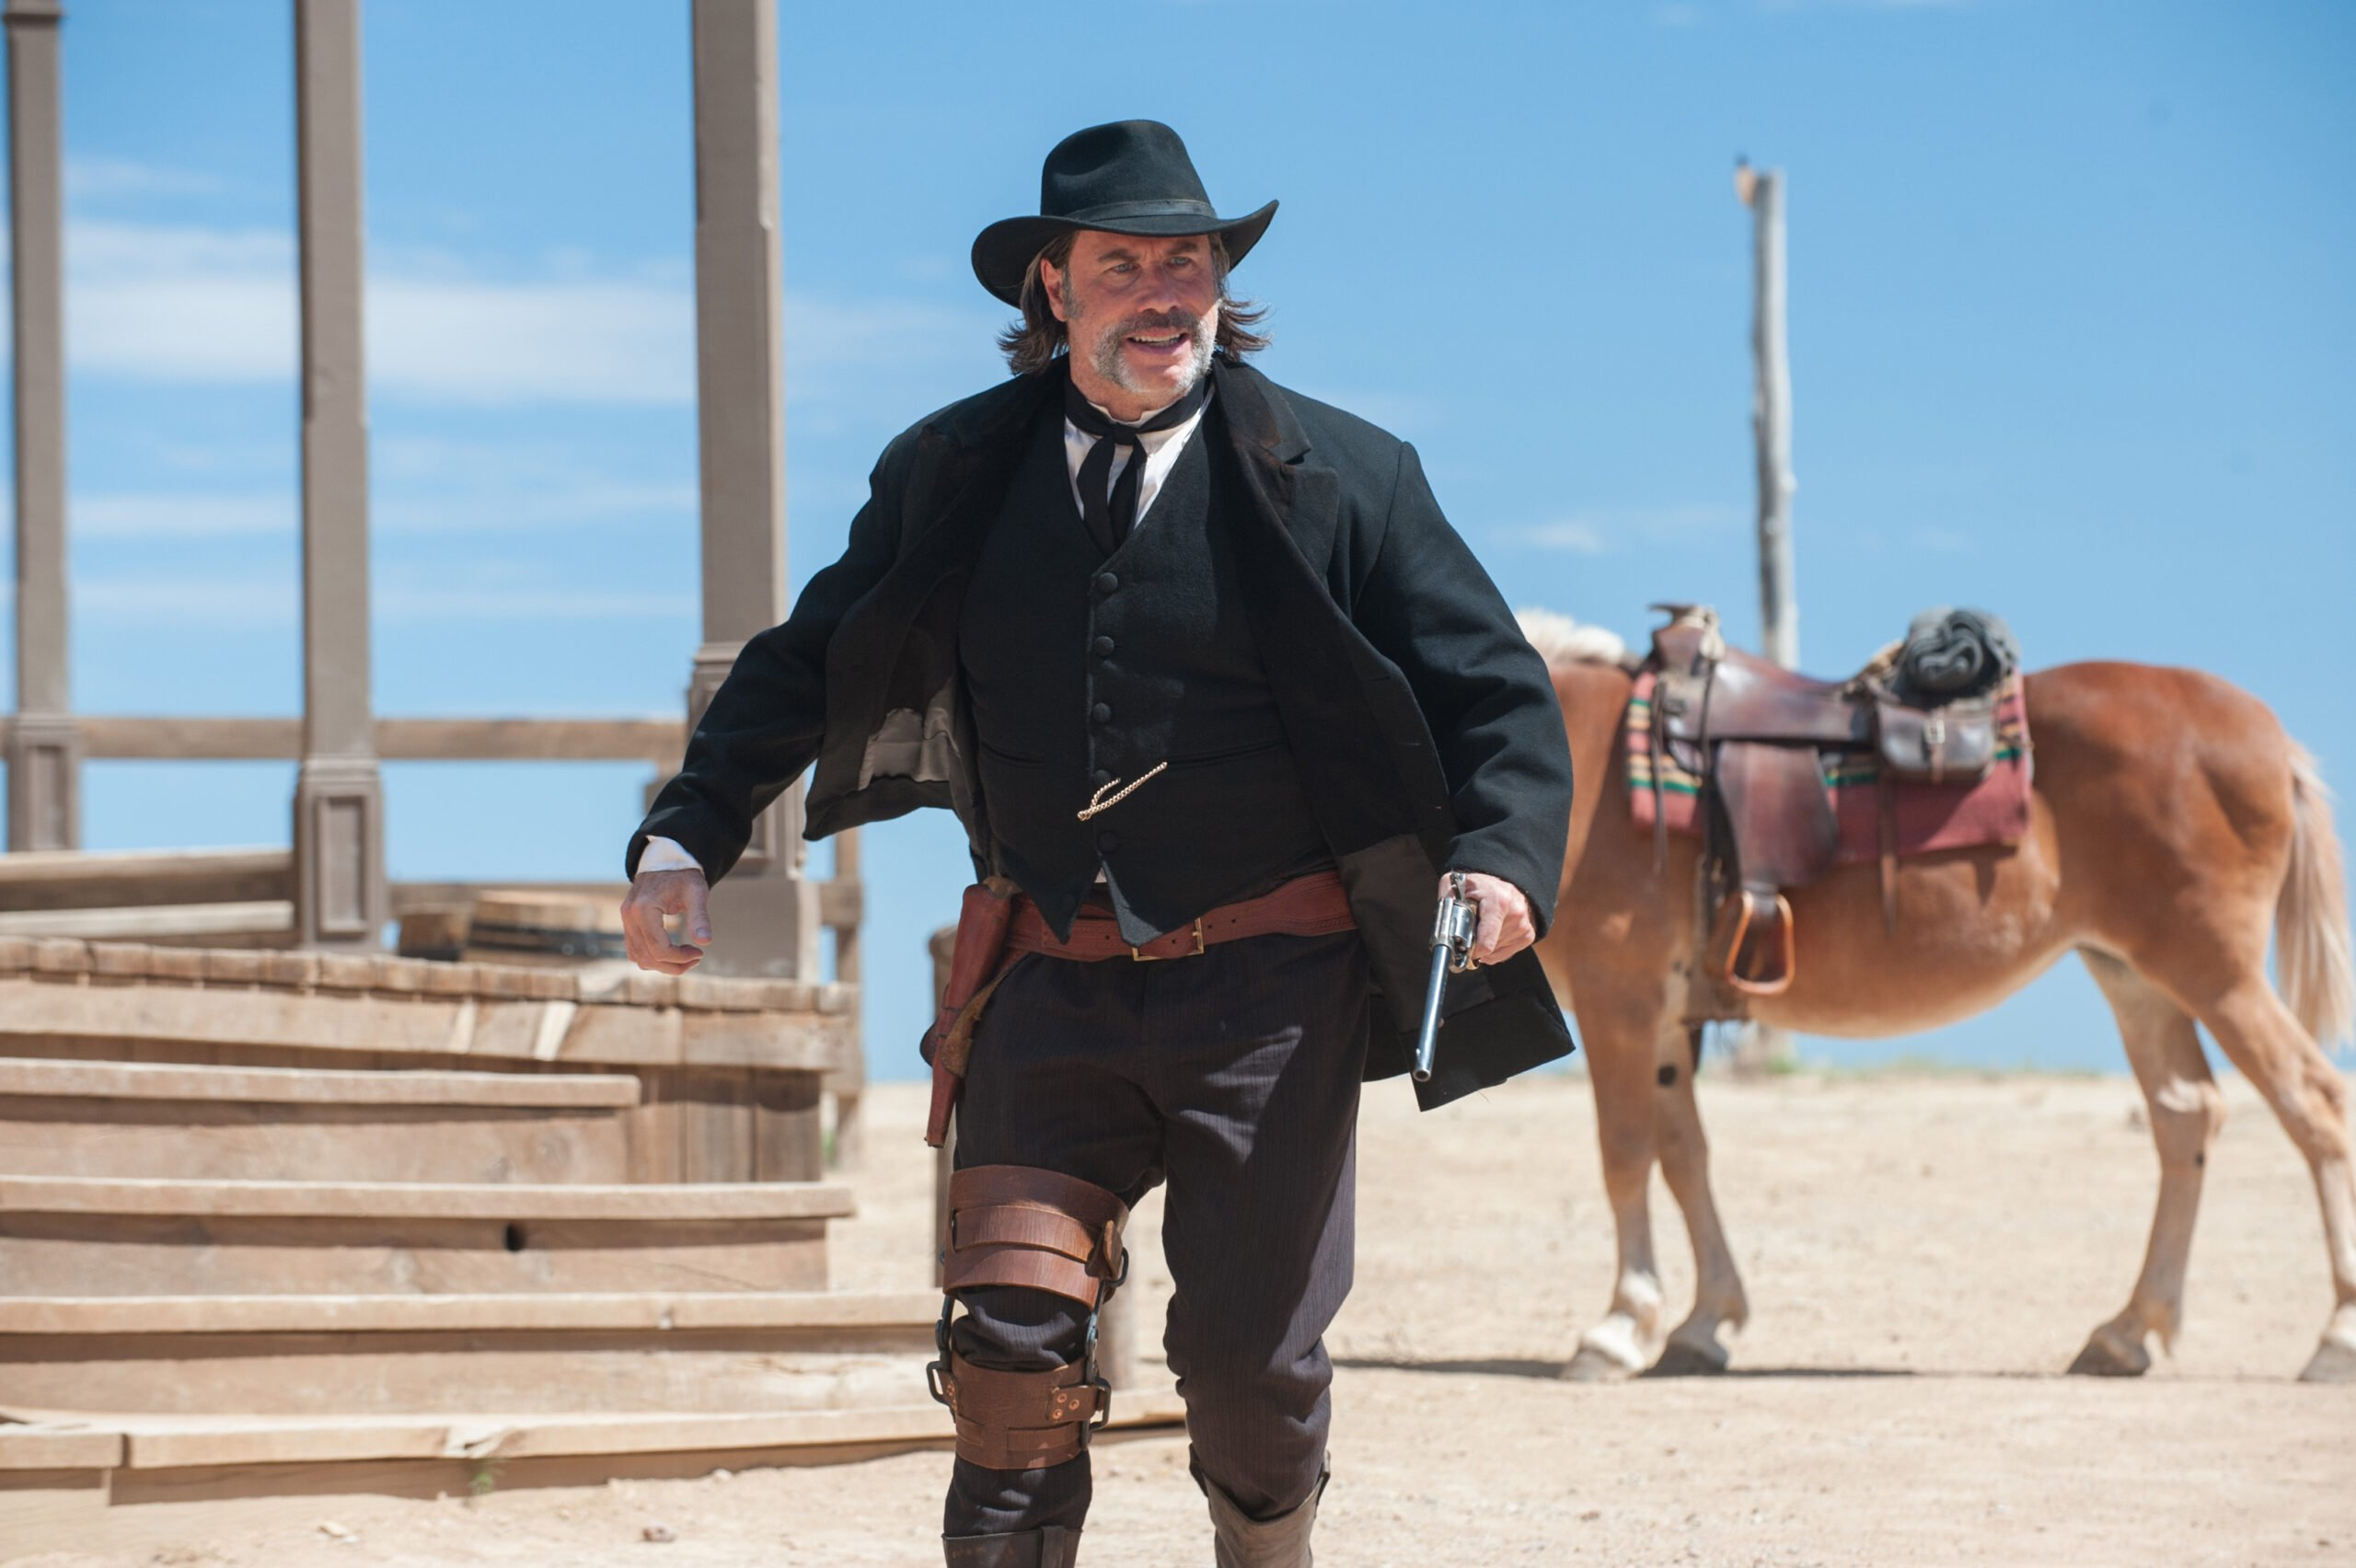 You Need To Watch This John Travolta Western That's Dominating Netflix's Top Ten